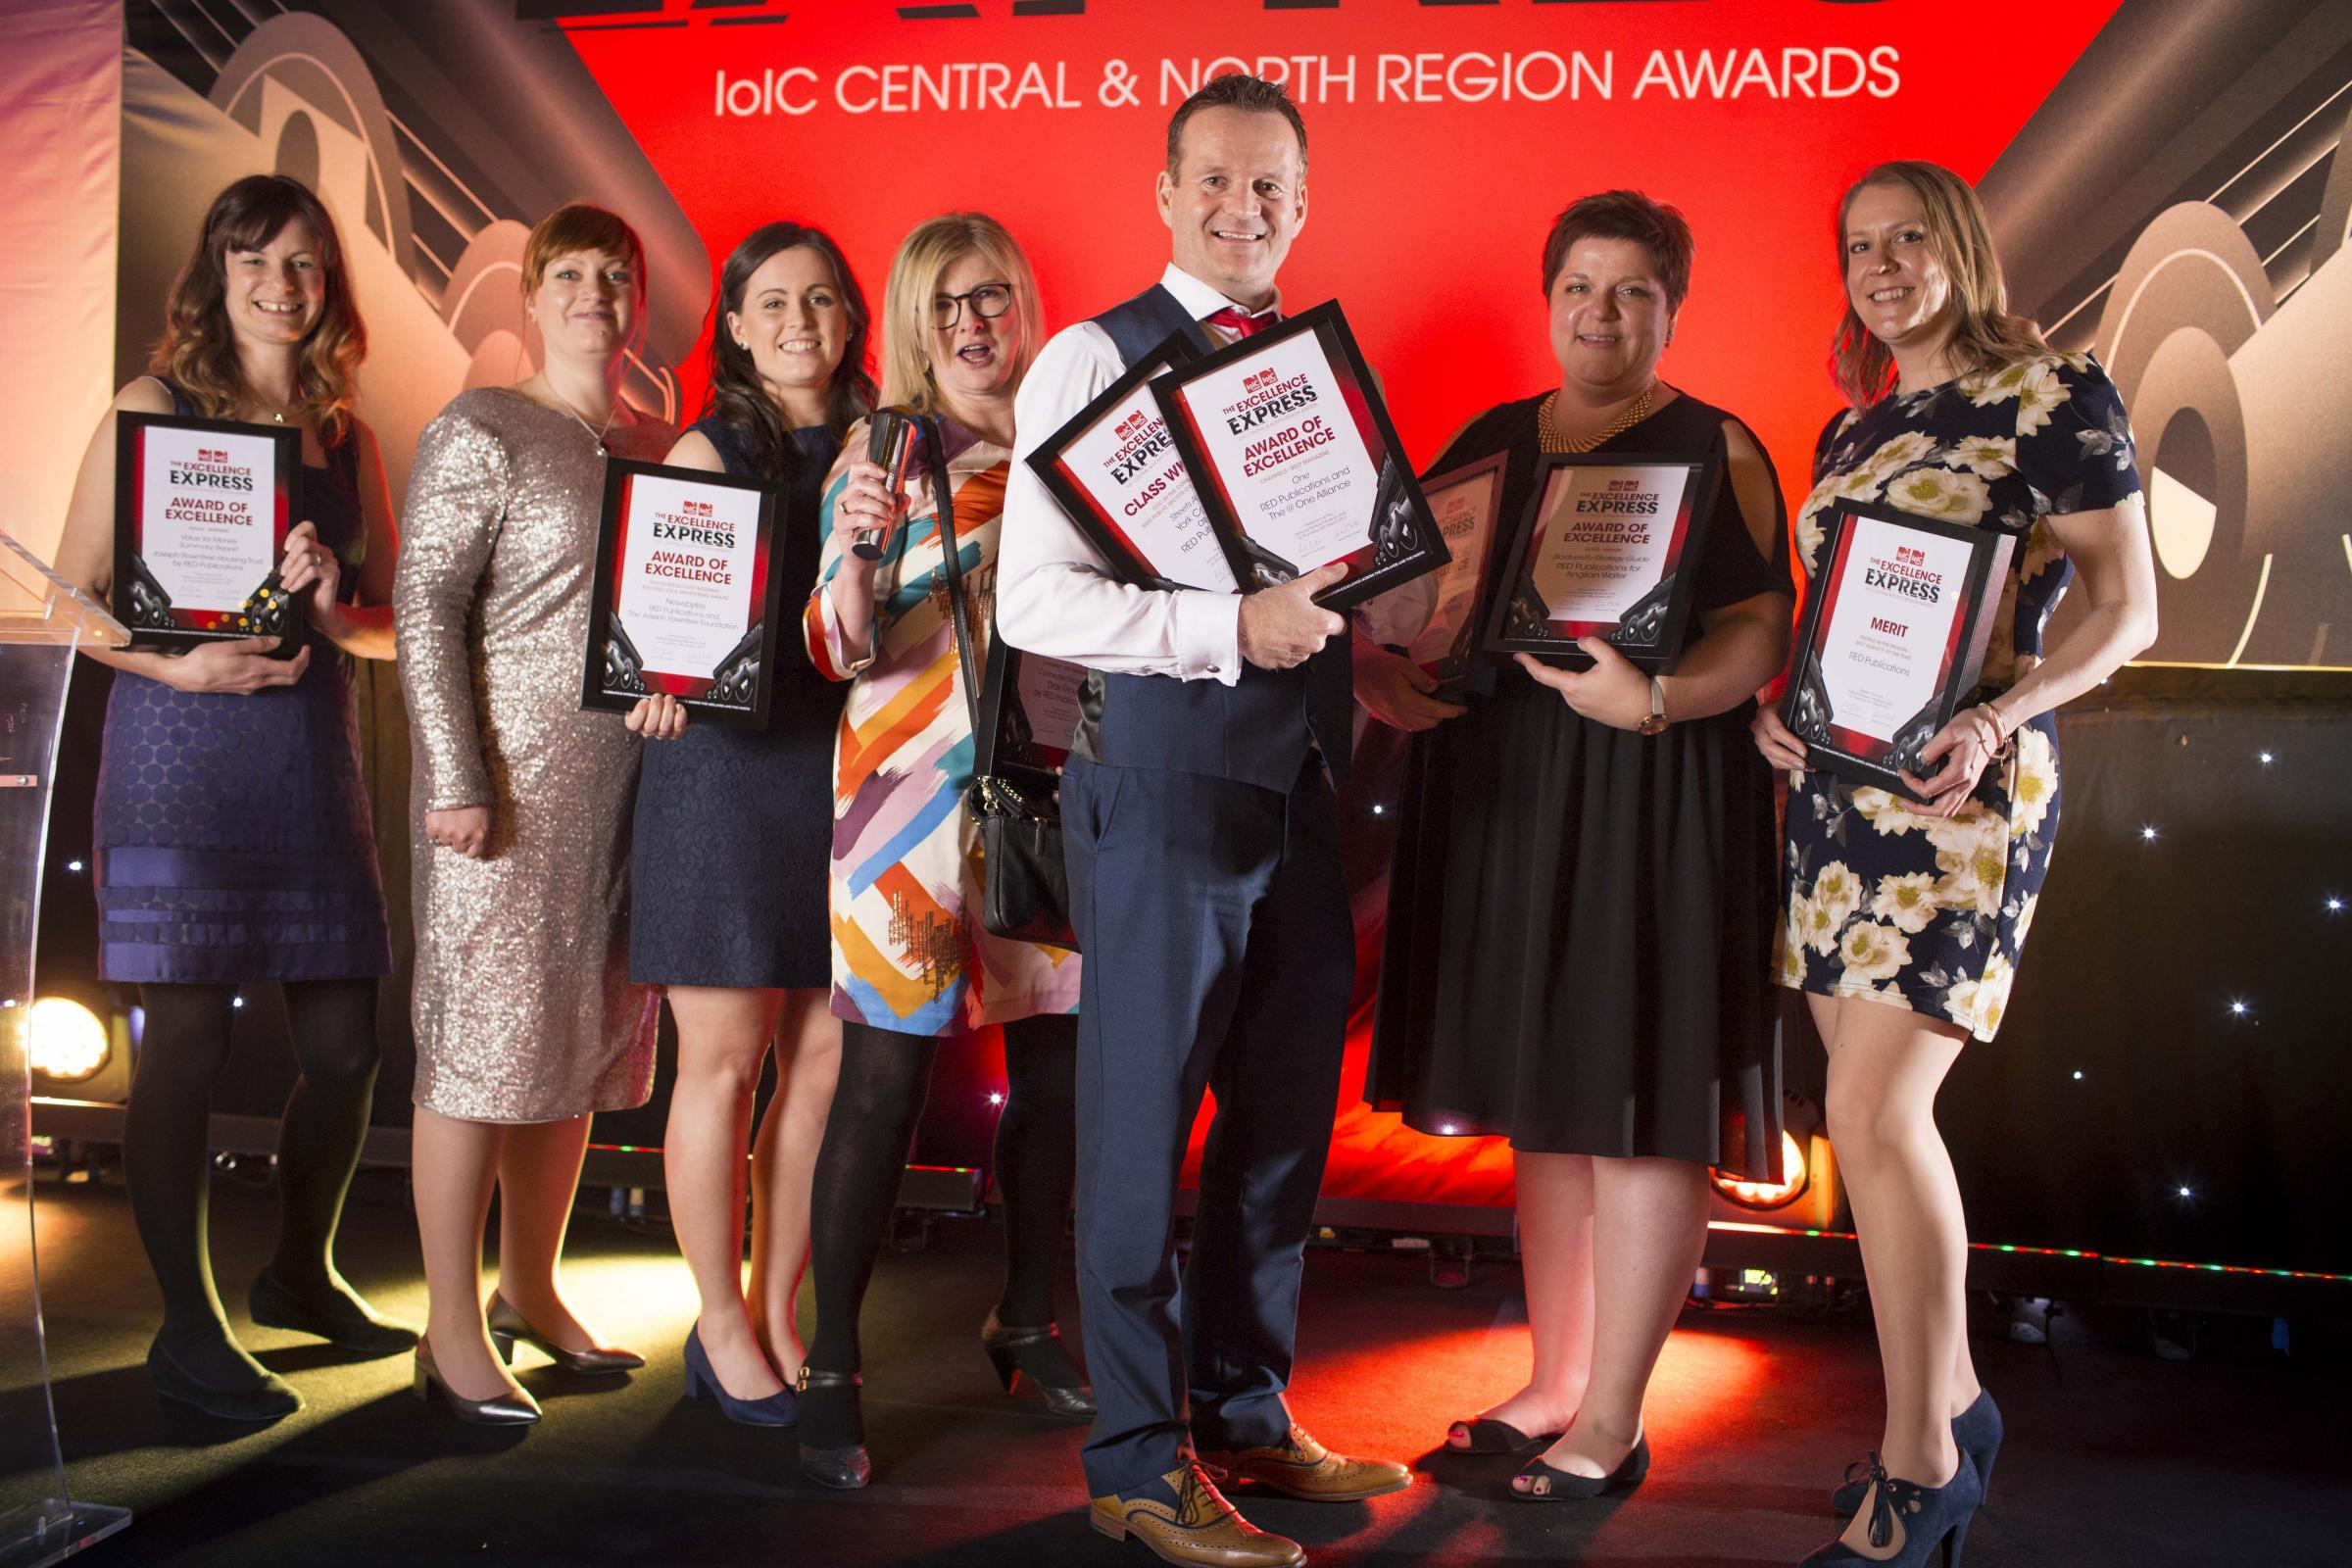 The Red team are hoping to build on the success of last year's IoIC event when they picked up eight awards